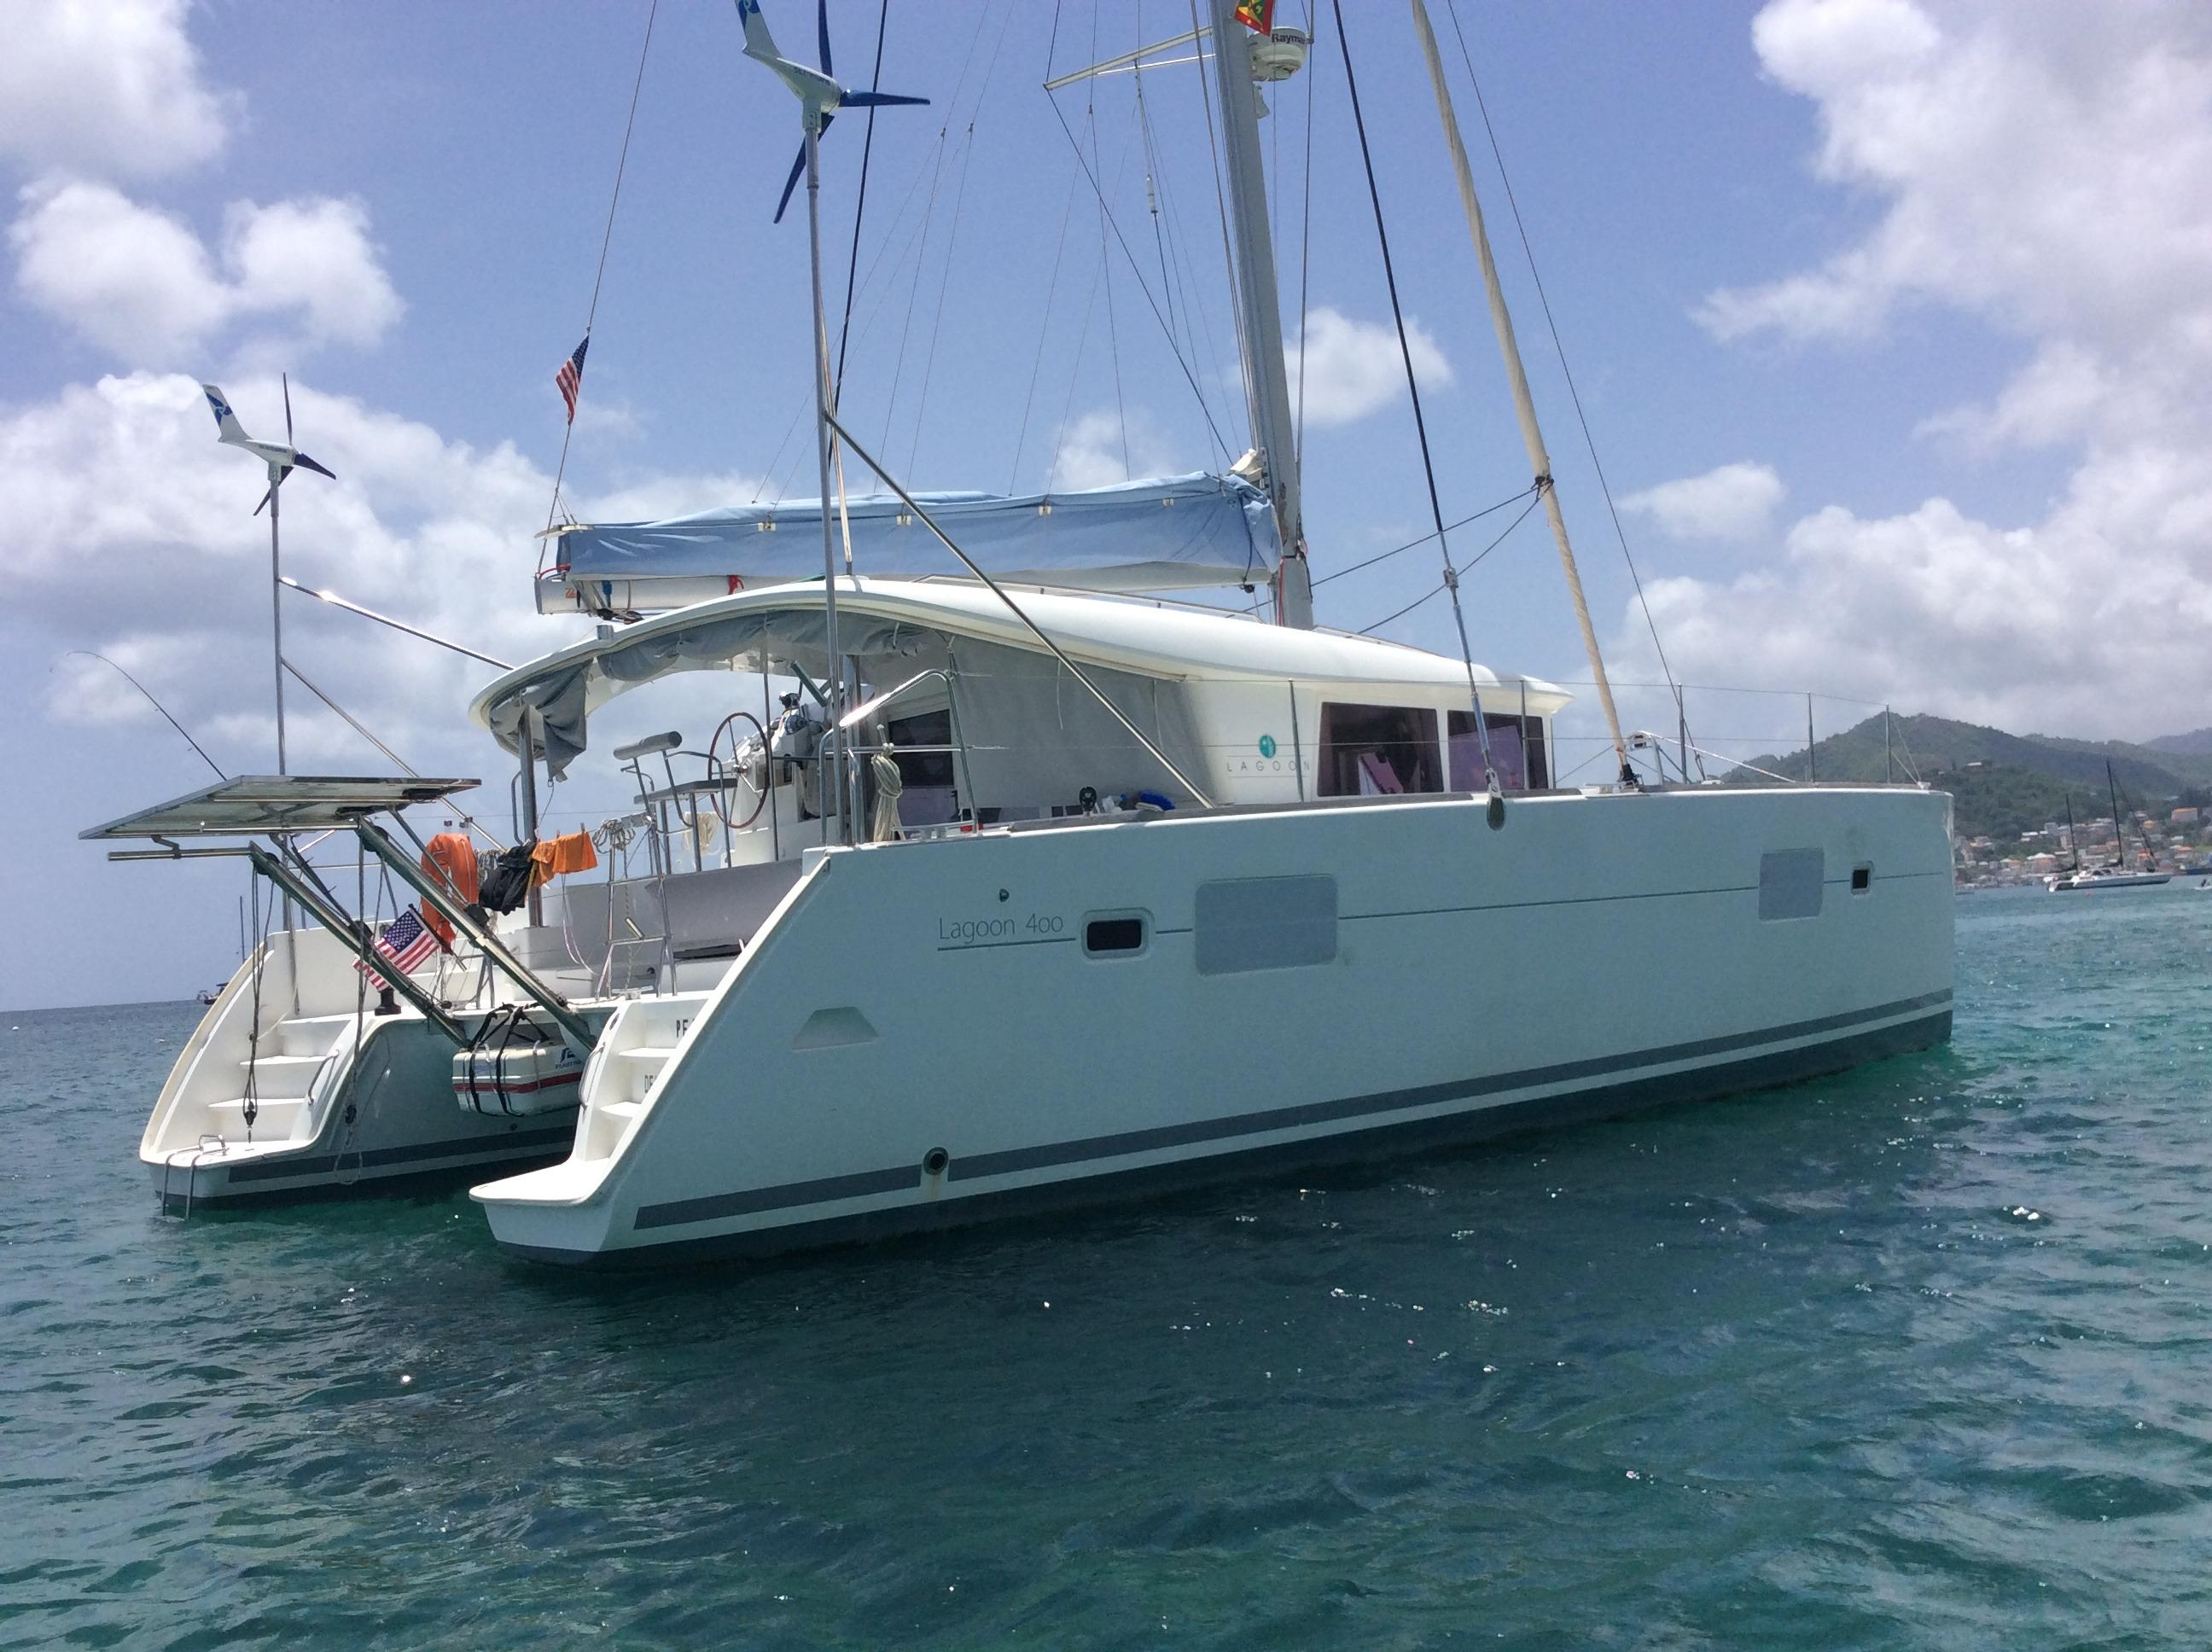 2010 Lagoon 400 Owner Version Sail Boat For Sale Www